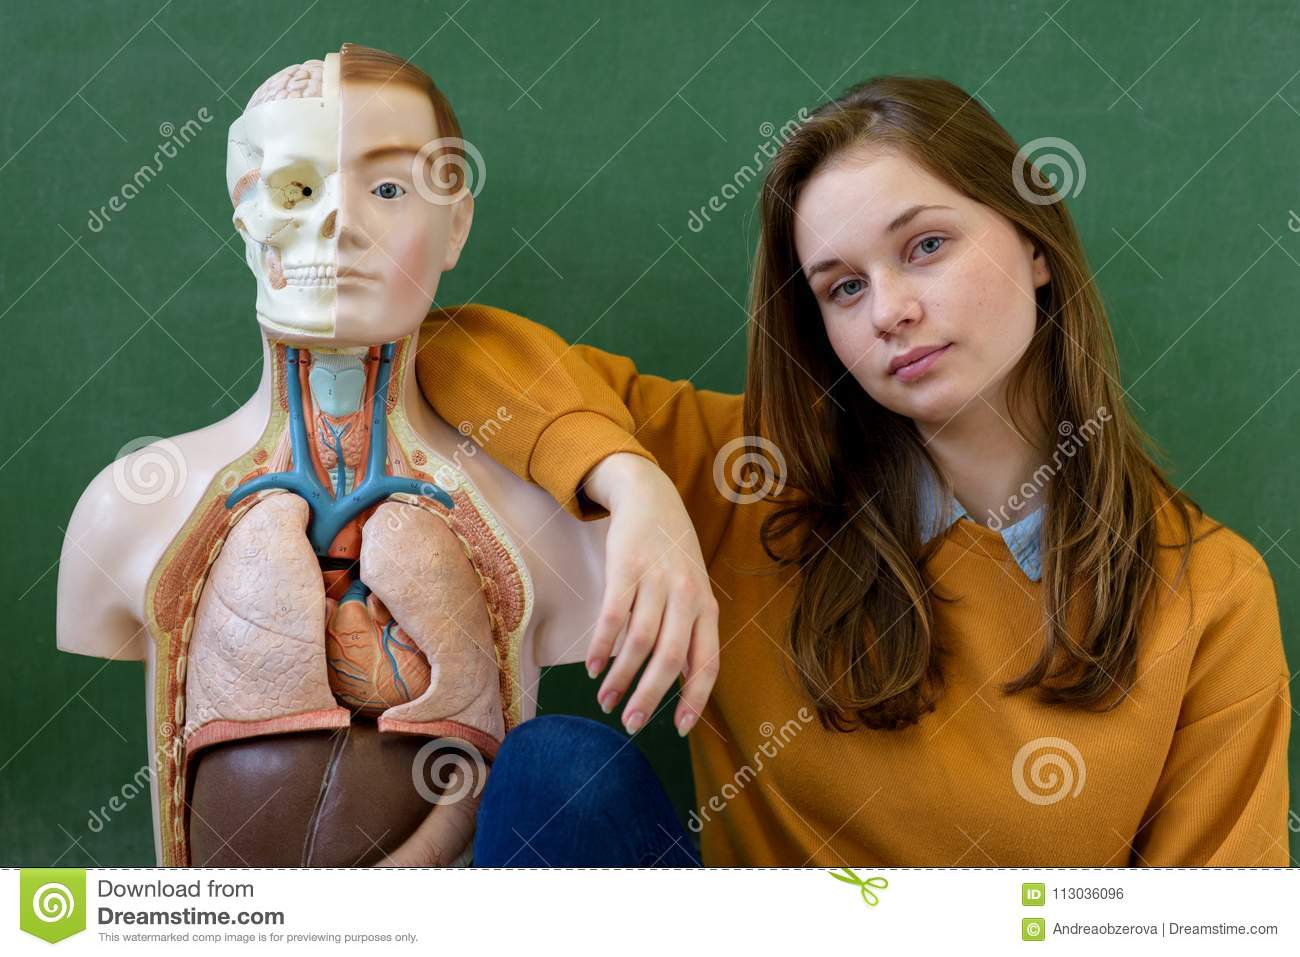 Cool Female High School Student Portrait With An Artificial Human